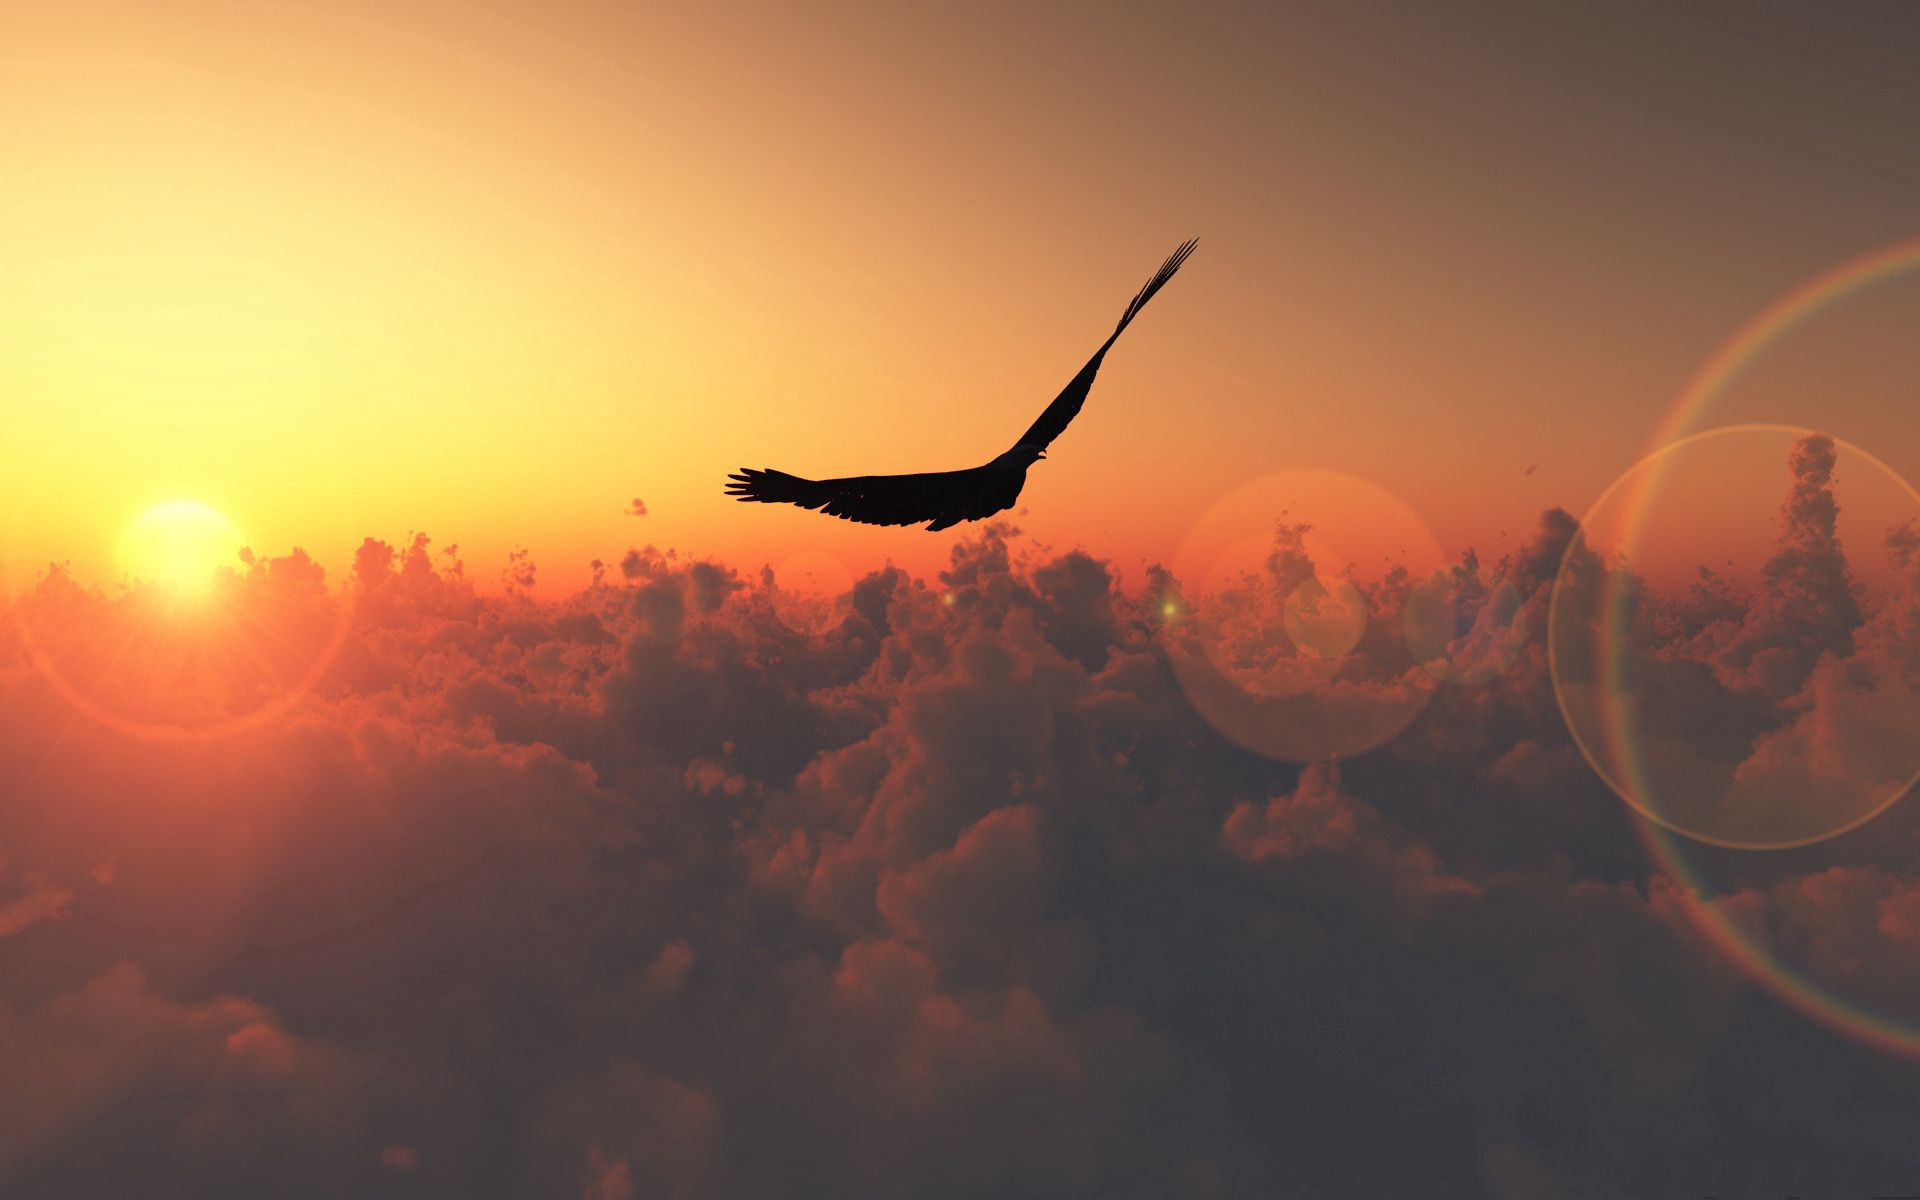 139570 download wallpaper Animals, Sun, Clouds, Bird, Flight screensavers and pictures for free